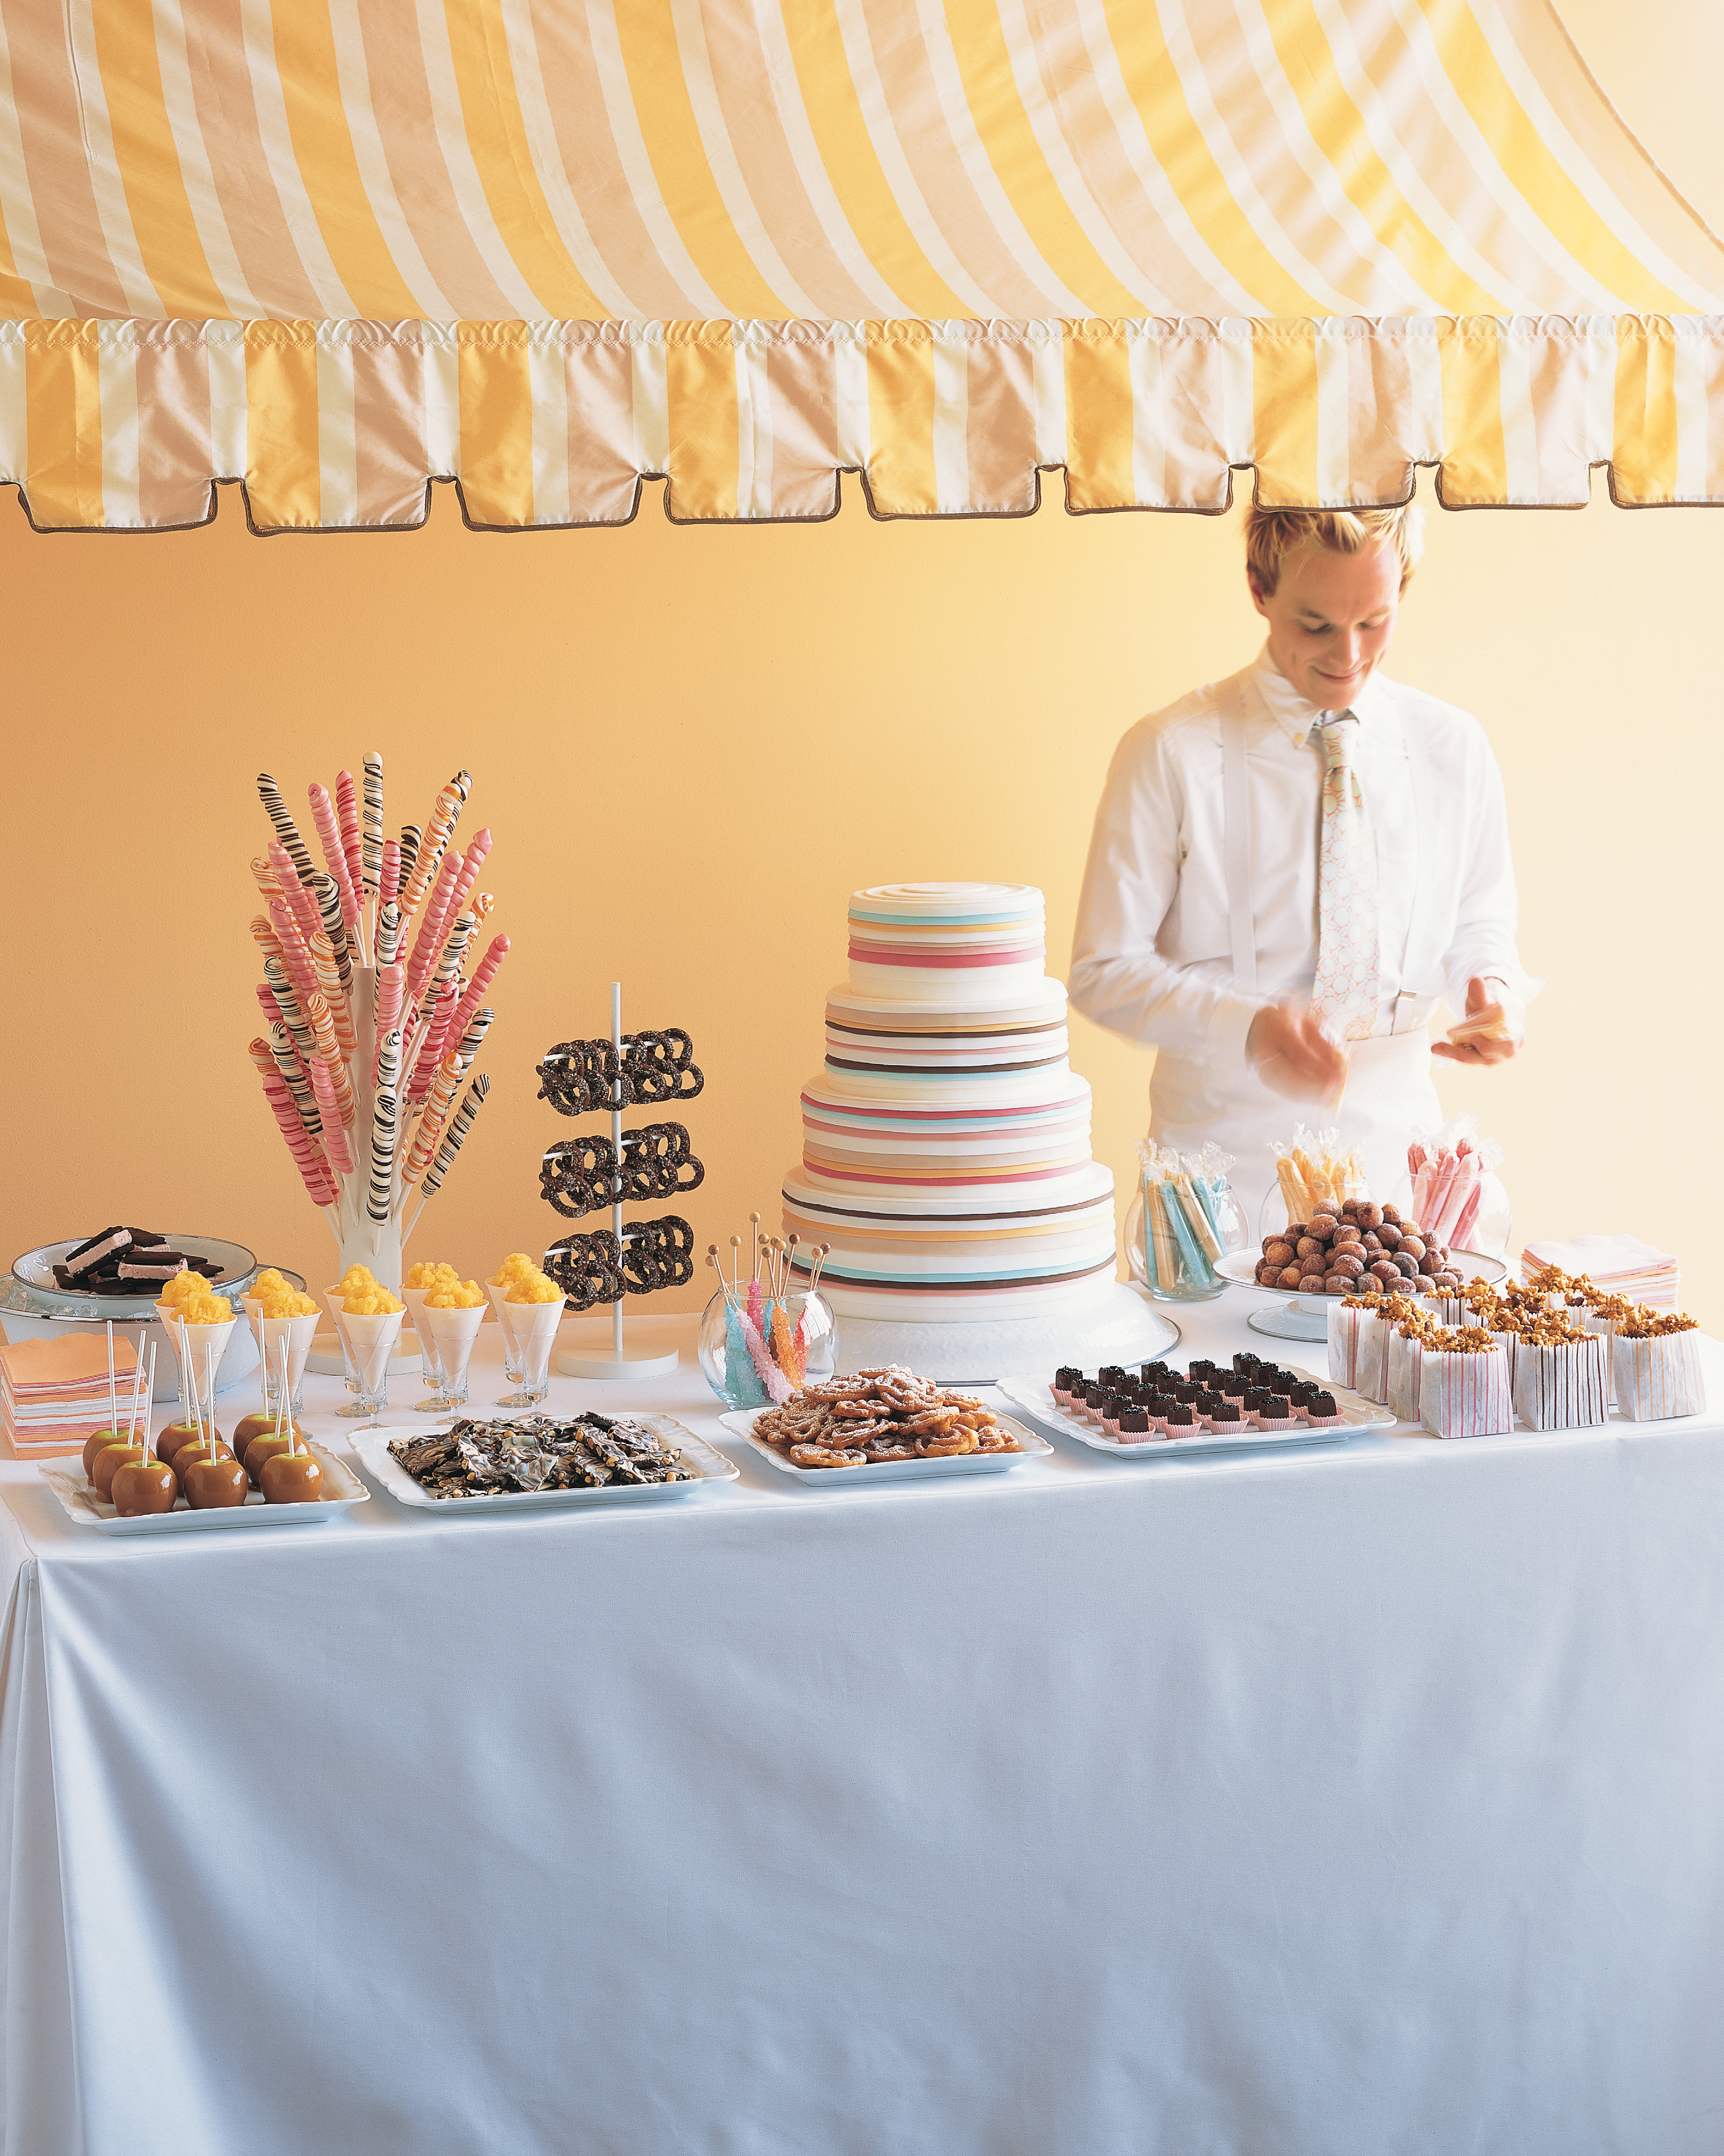 snack-station-carnival-stand-dessert-buffet-w04-0515.jpg